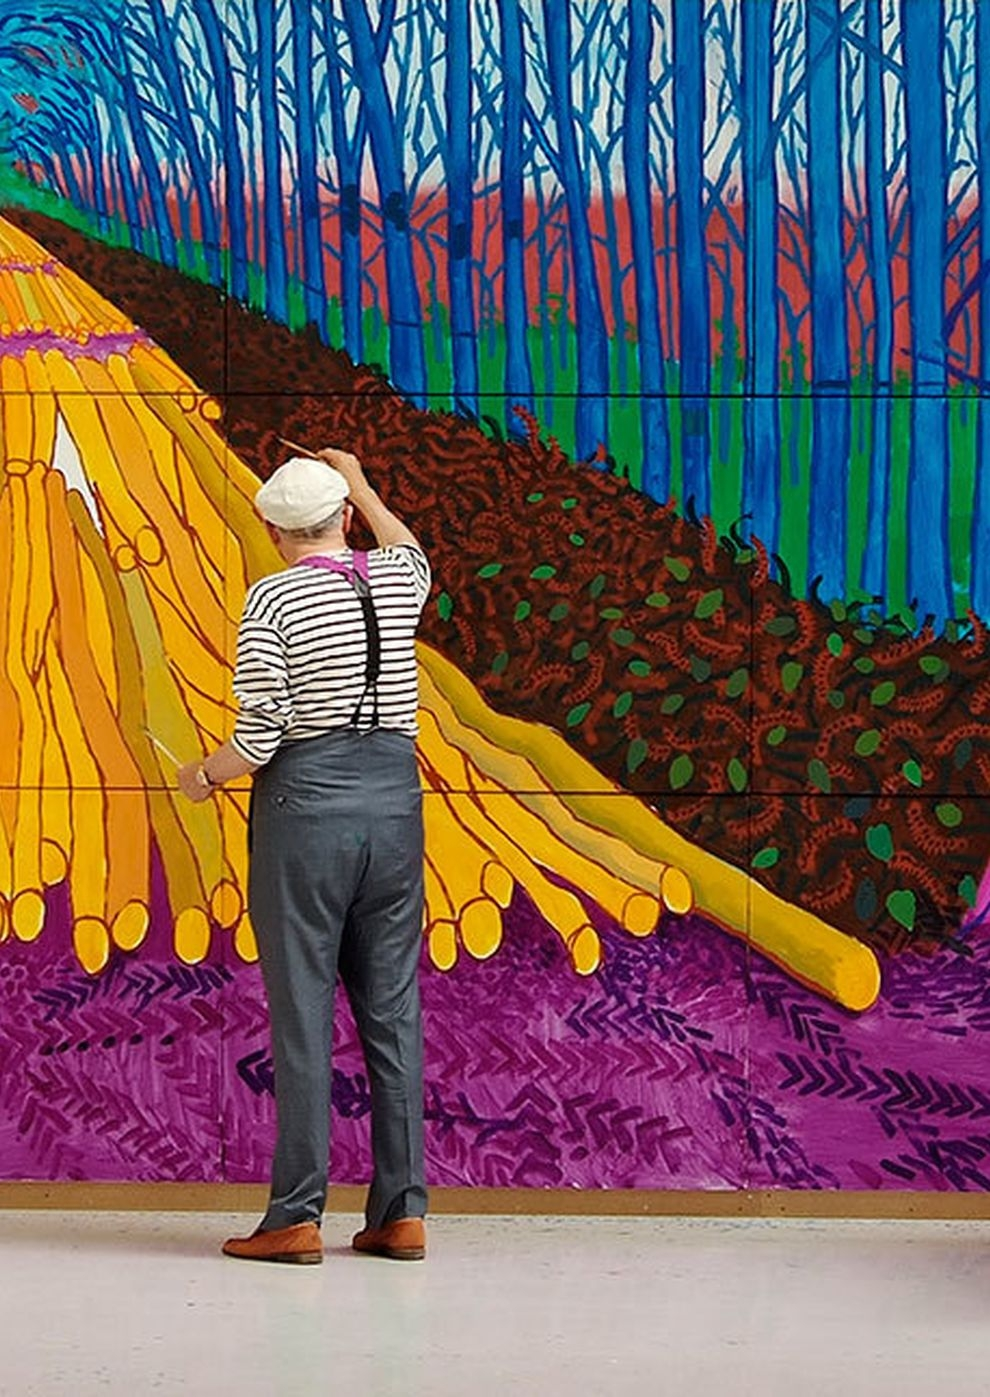 Exhibition on Screen: David Hockney in der Royal Academy of Arts (Poster)